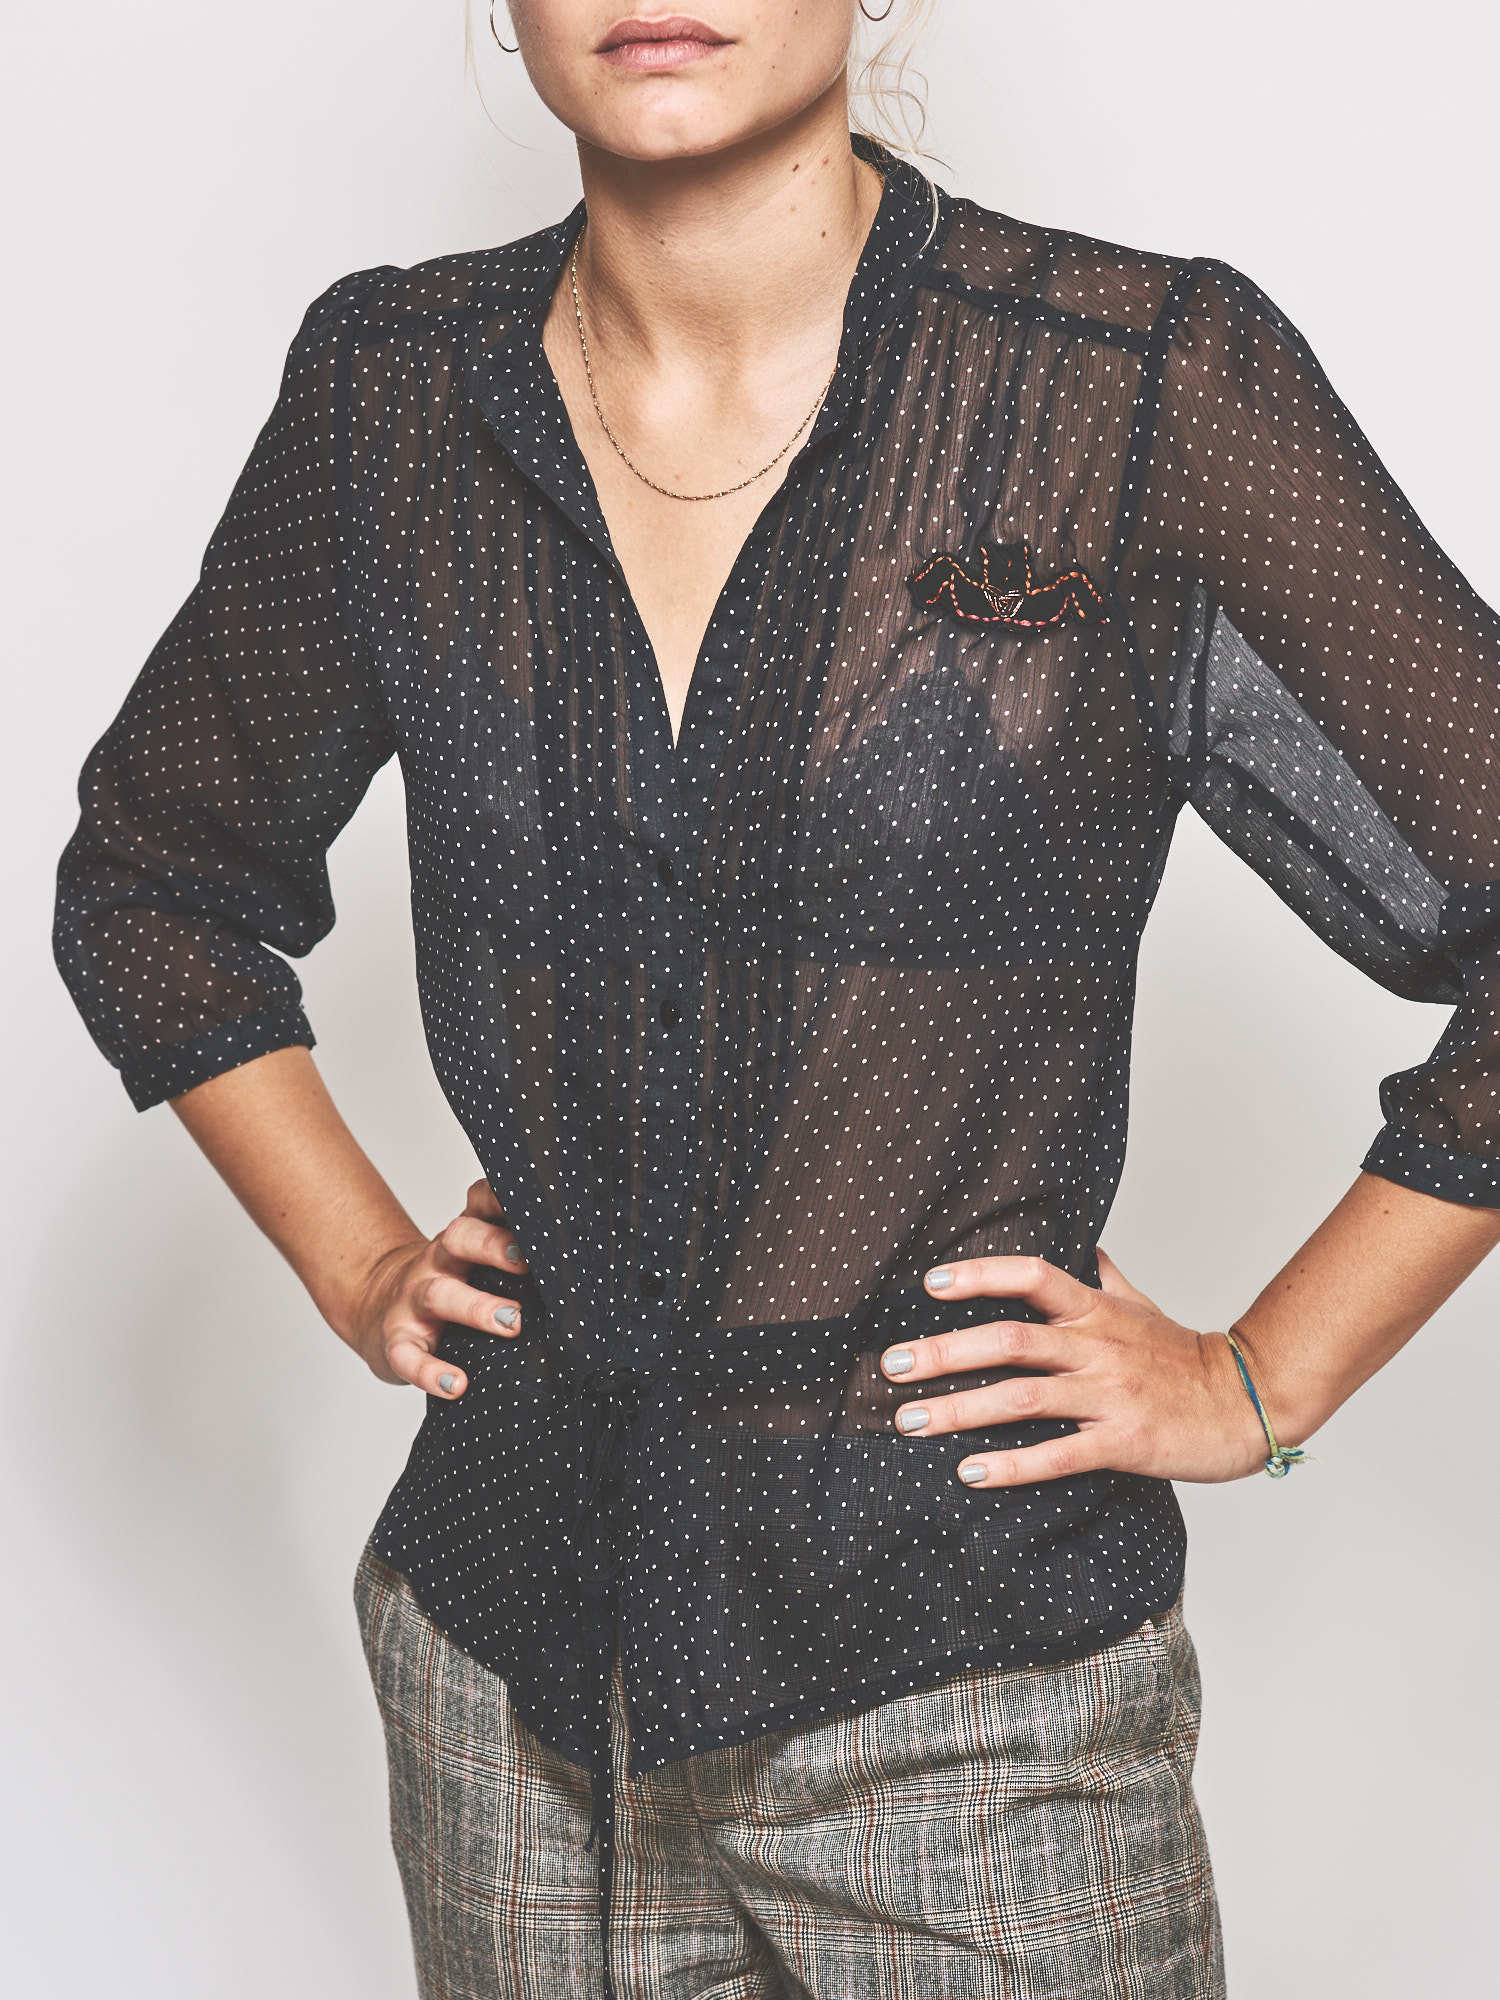 The Spotted Shirt with Logo